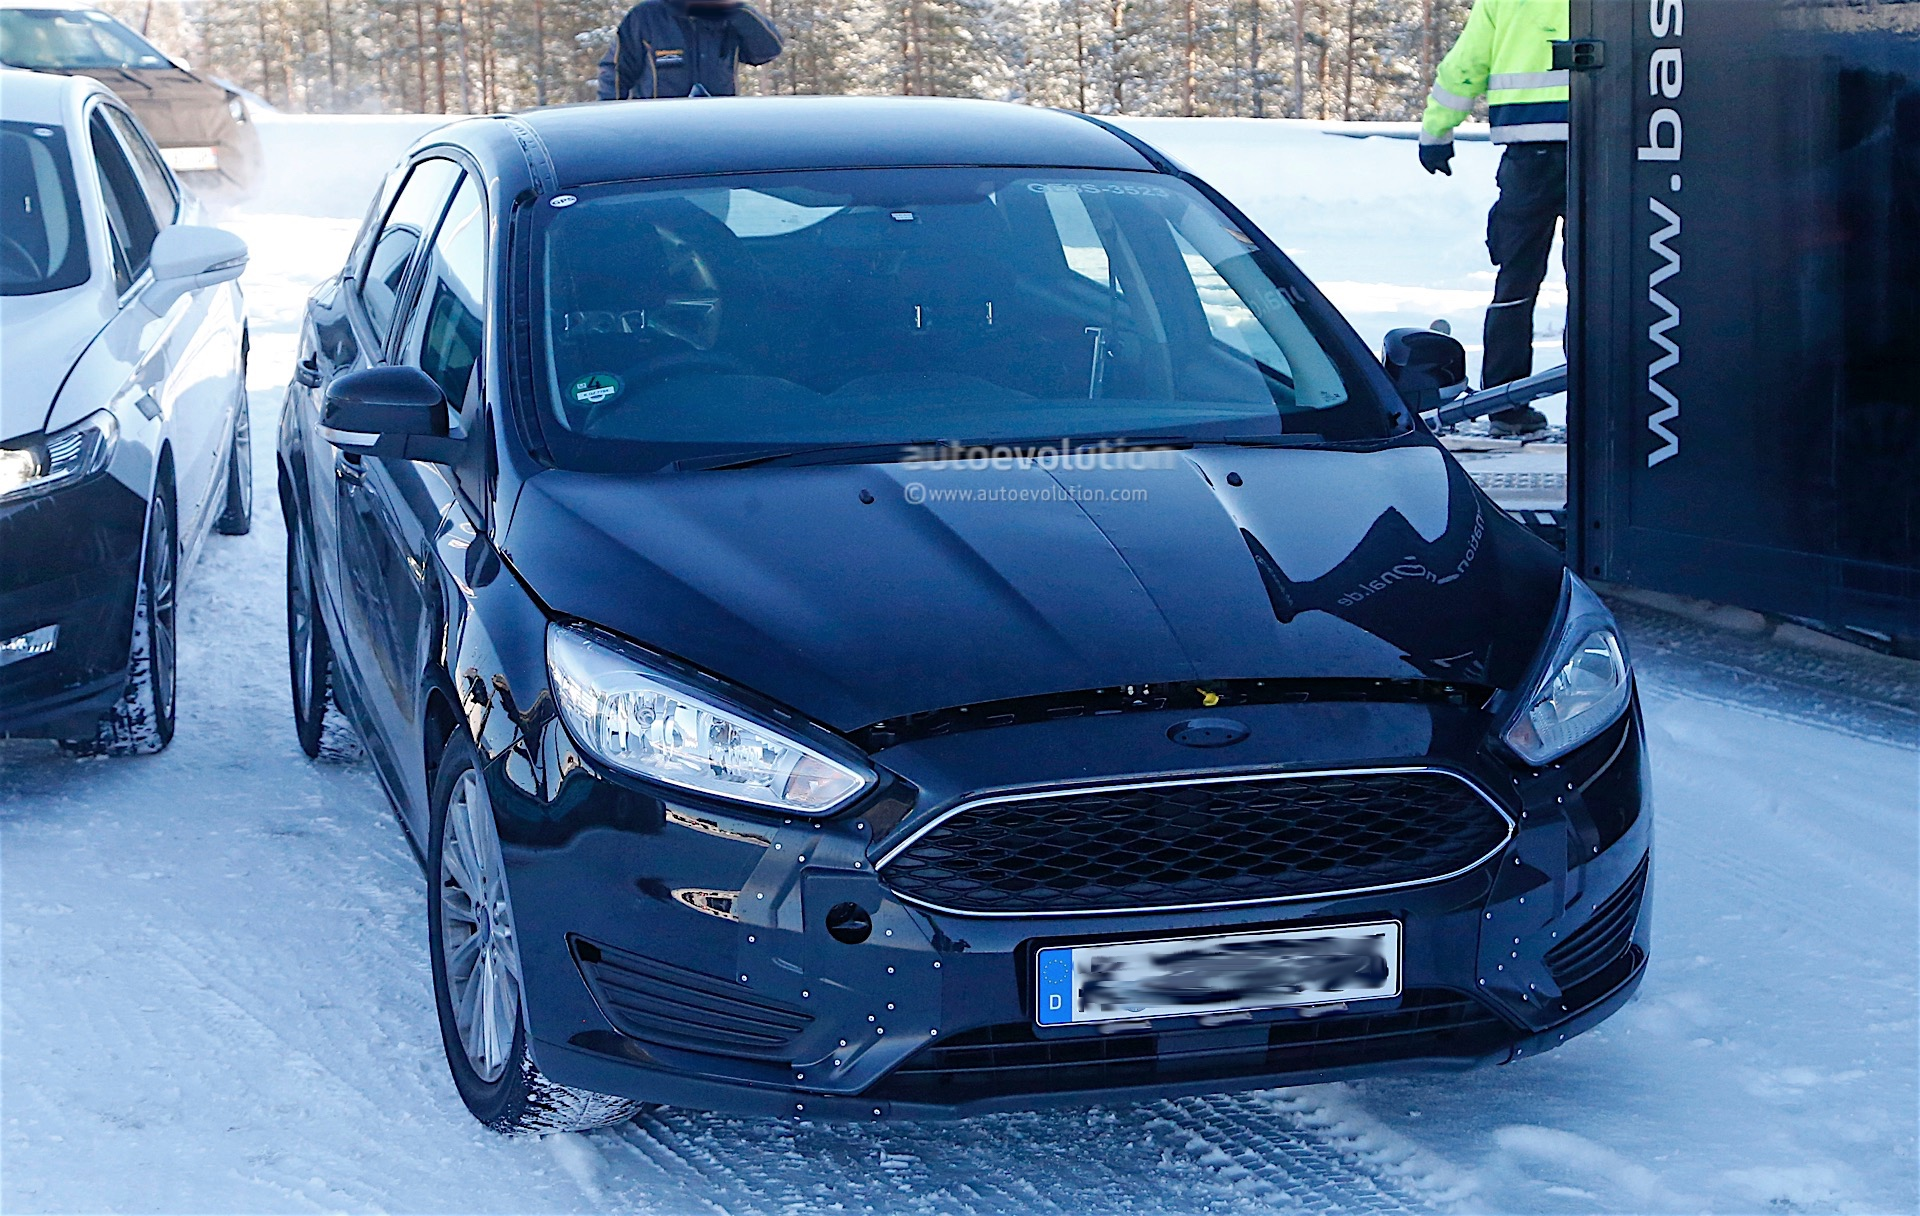 Ford Body Parts >> Ford Testing Next-Generation Focus in Winter Conditions - First Spyshots - autoevolution